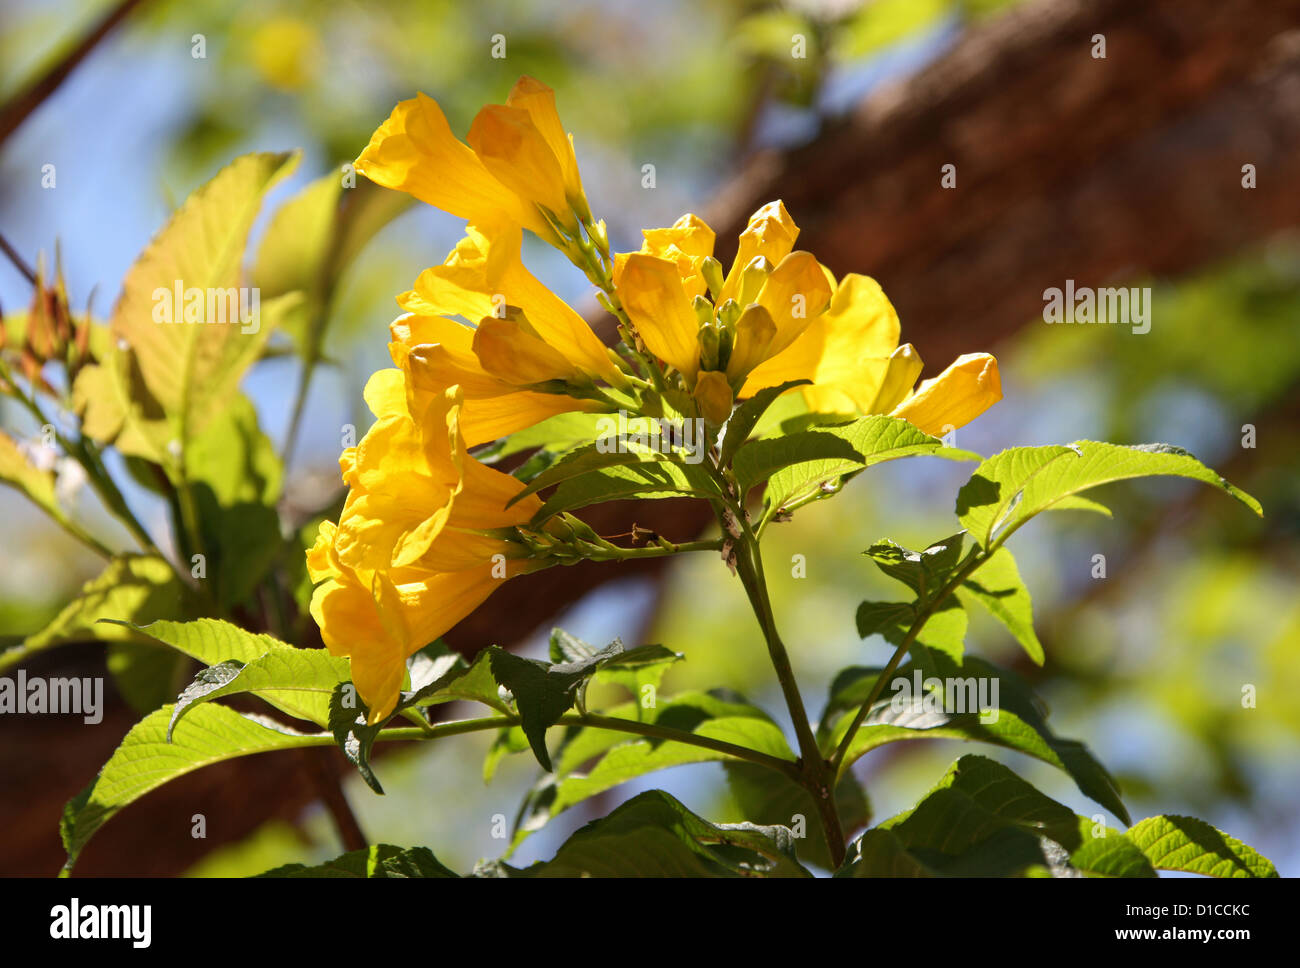 Yellow Elder Tree, Tecoma stans, Bignoniaceae. Native to the Tropical Americas. This Specimen Photographed in Madagascar, - Stock Image